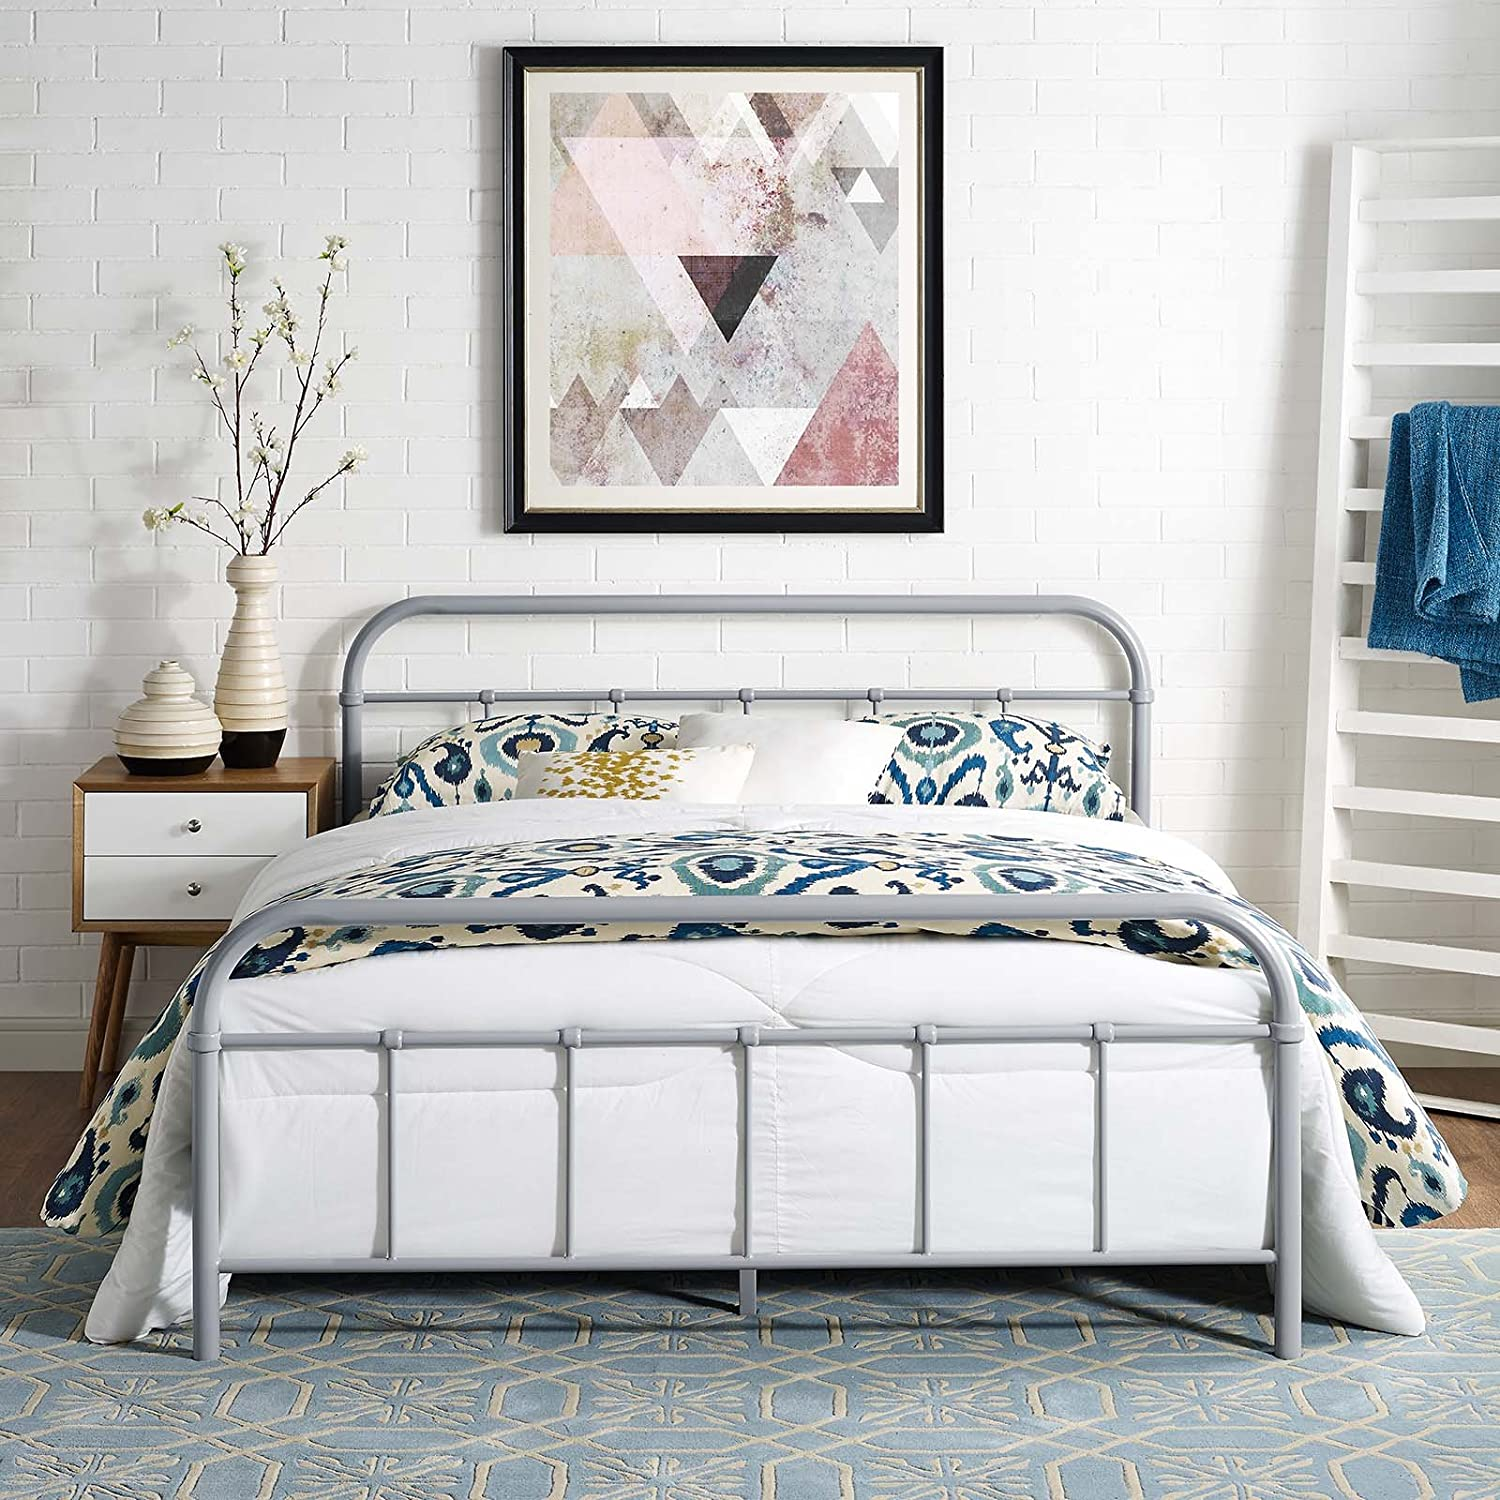 Modway Maisie Steel Metal Farmhouse Platform Queen Bed Frame With Headboard In Gray